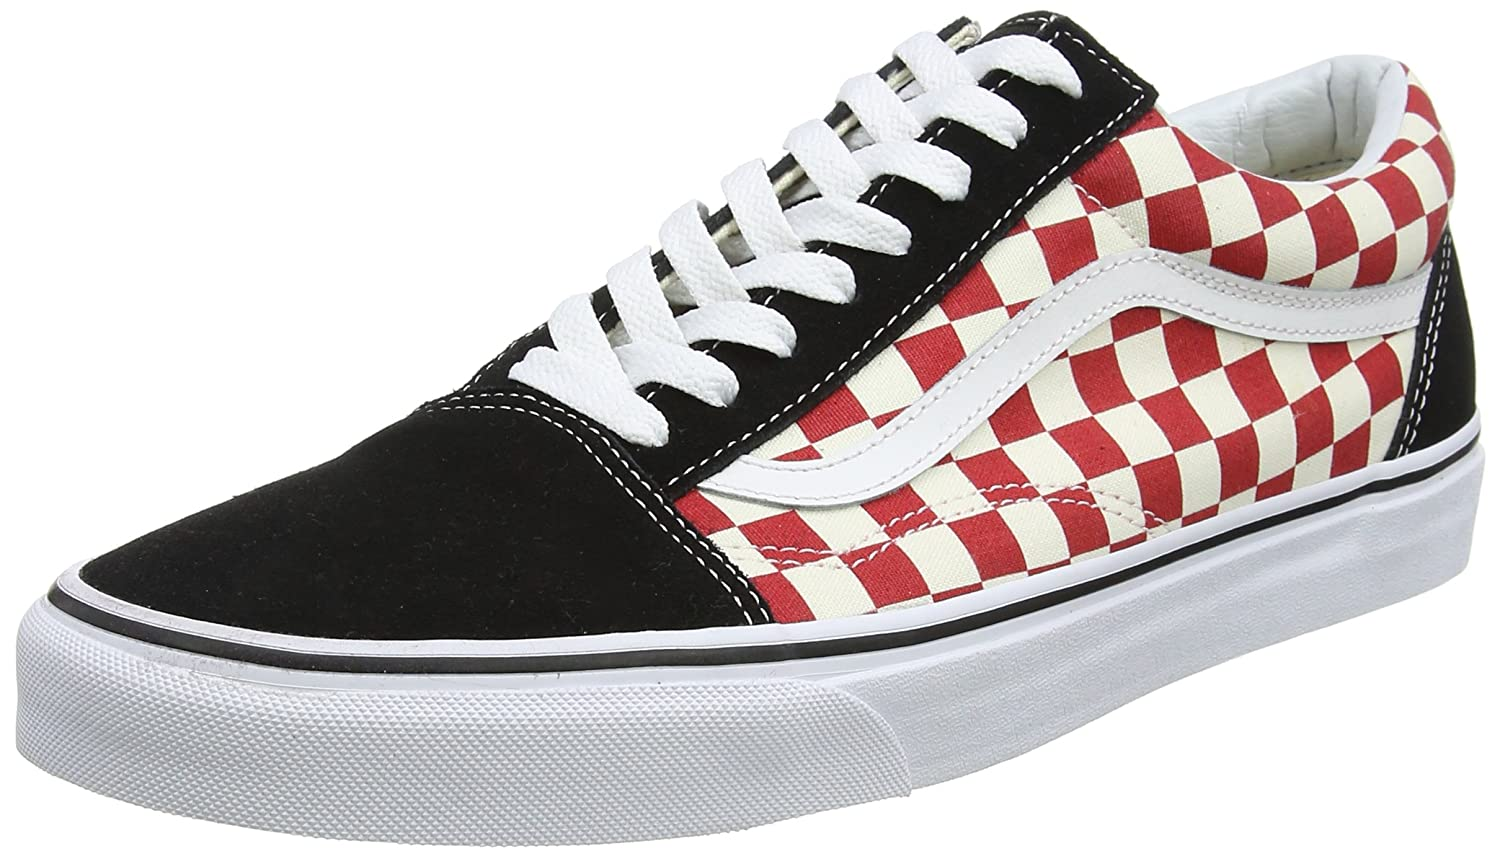 Vans Old Skool Unisex Adults' Low-Top Trainers B075FX4Y1K 10 M US Women / 8.5 M US Men|(35u) (Checkerboard) Black/Red